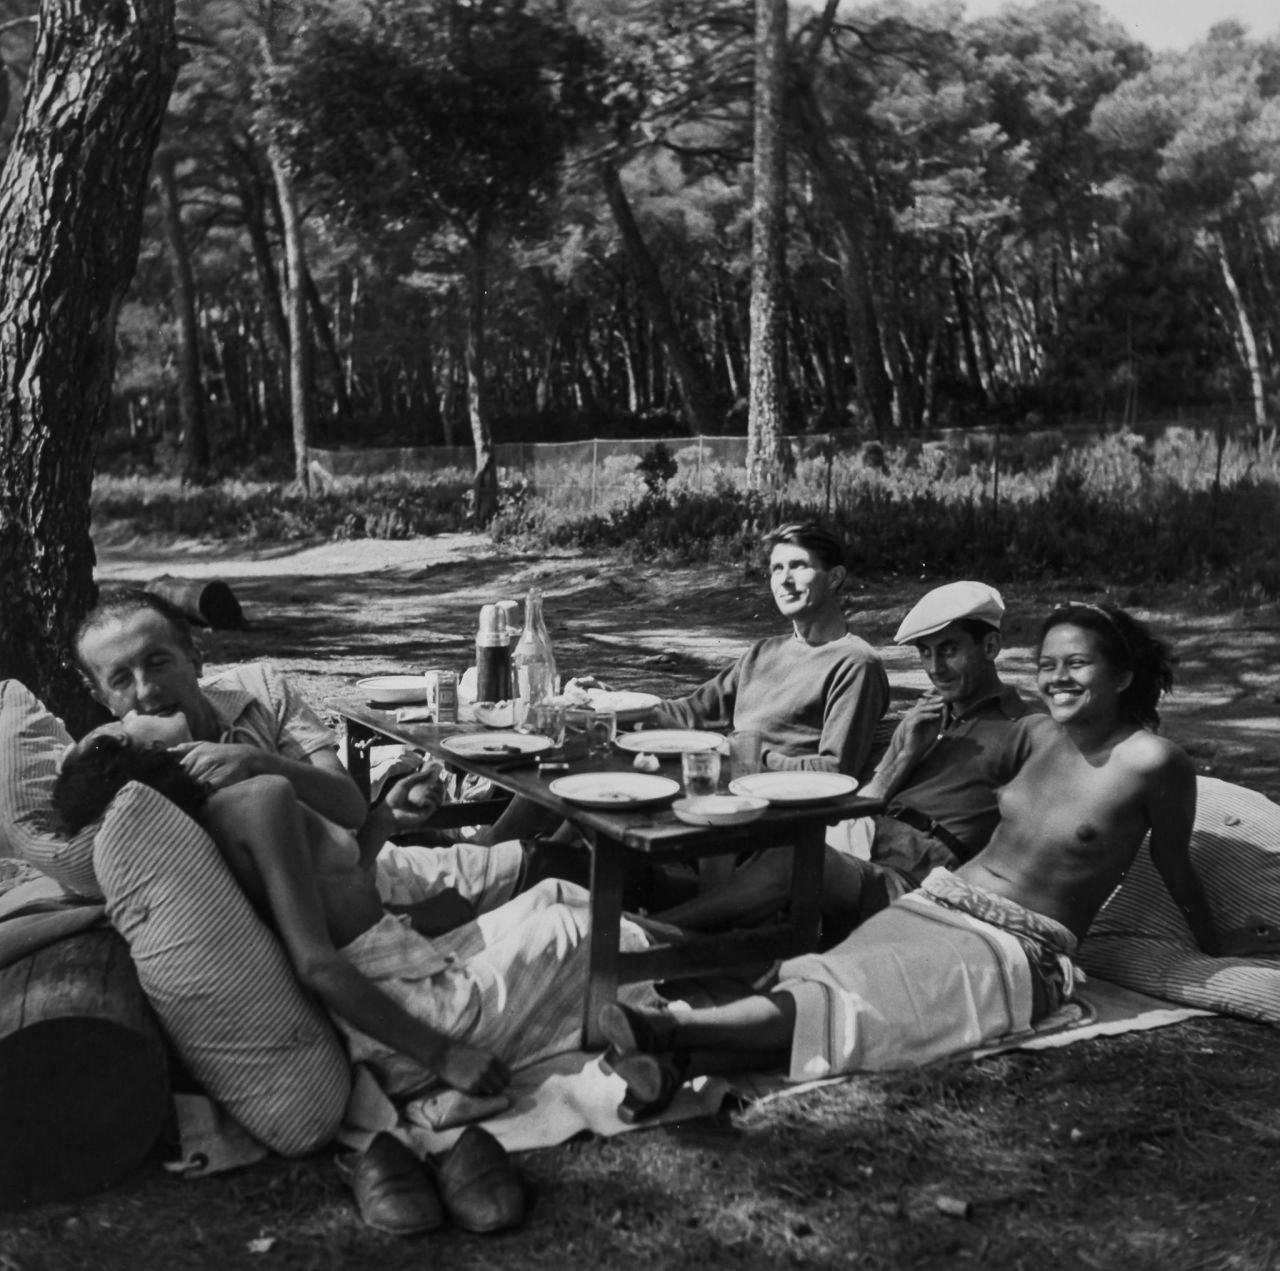 Picnic: Paul and Nusch Eluard, Roland Penrose, Man Ray, and Ady in Picassos garden, Mougins, France, 1937. ©Lee Miller